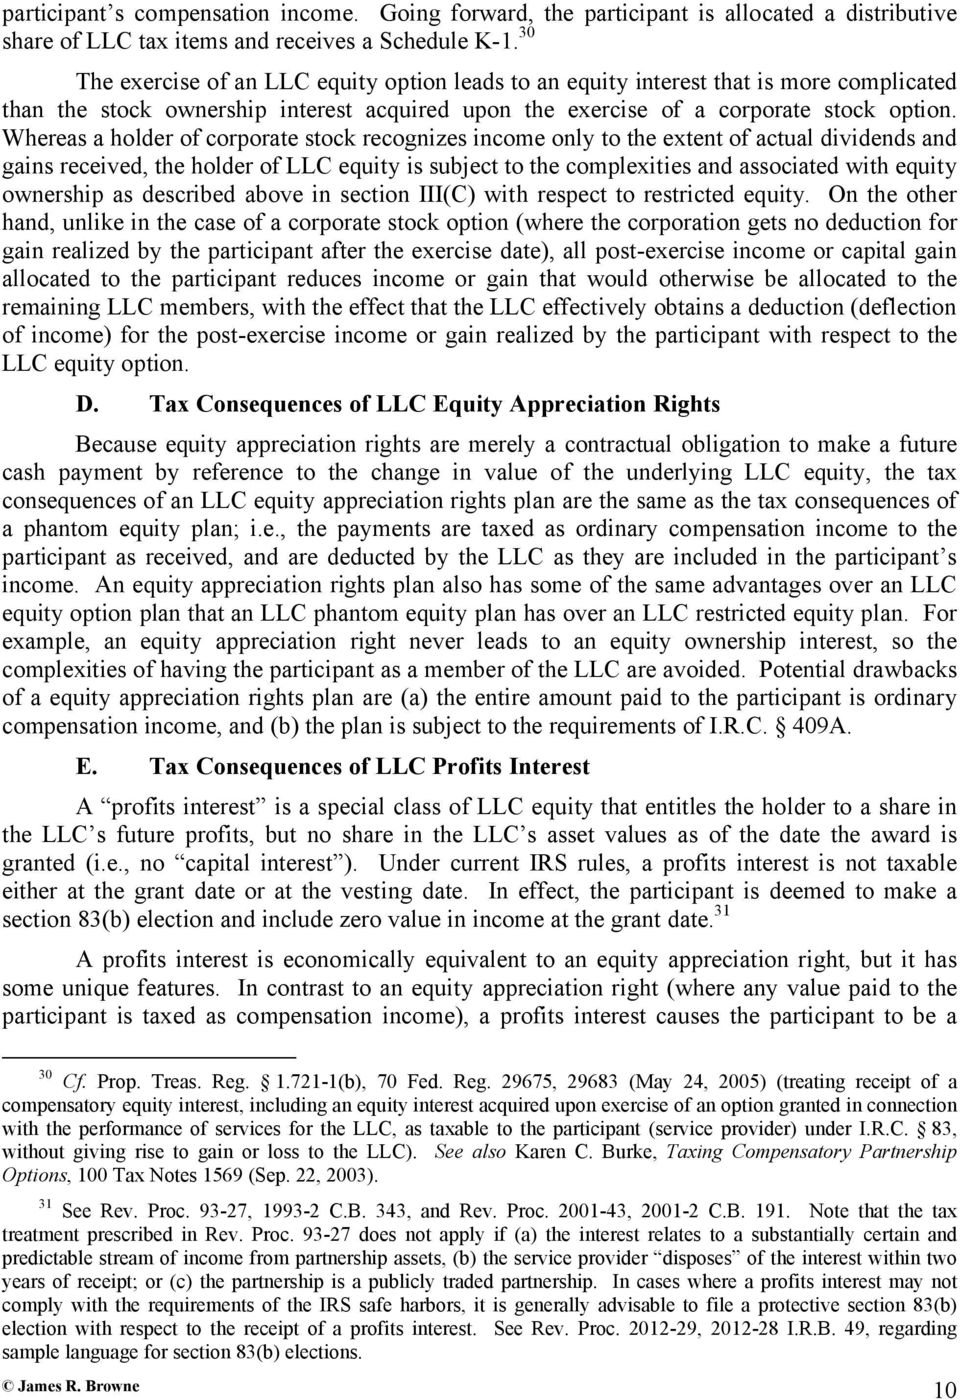 Whereas a holder of corporate stock recognizes income only to the extent of actual dividends and gains received, the holder of LLC equity is subject to the complexities and associated with equity